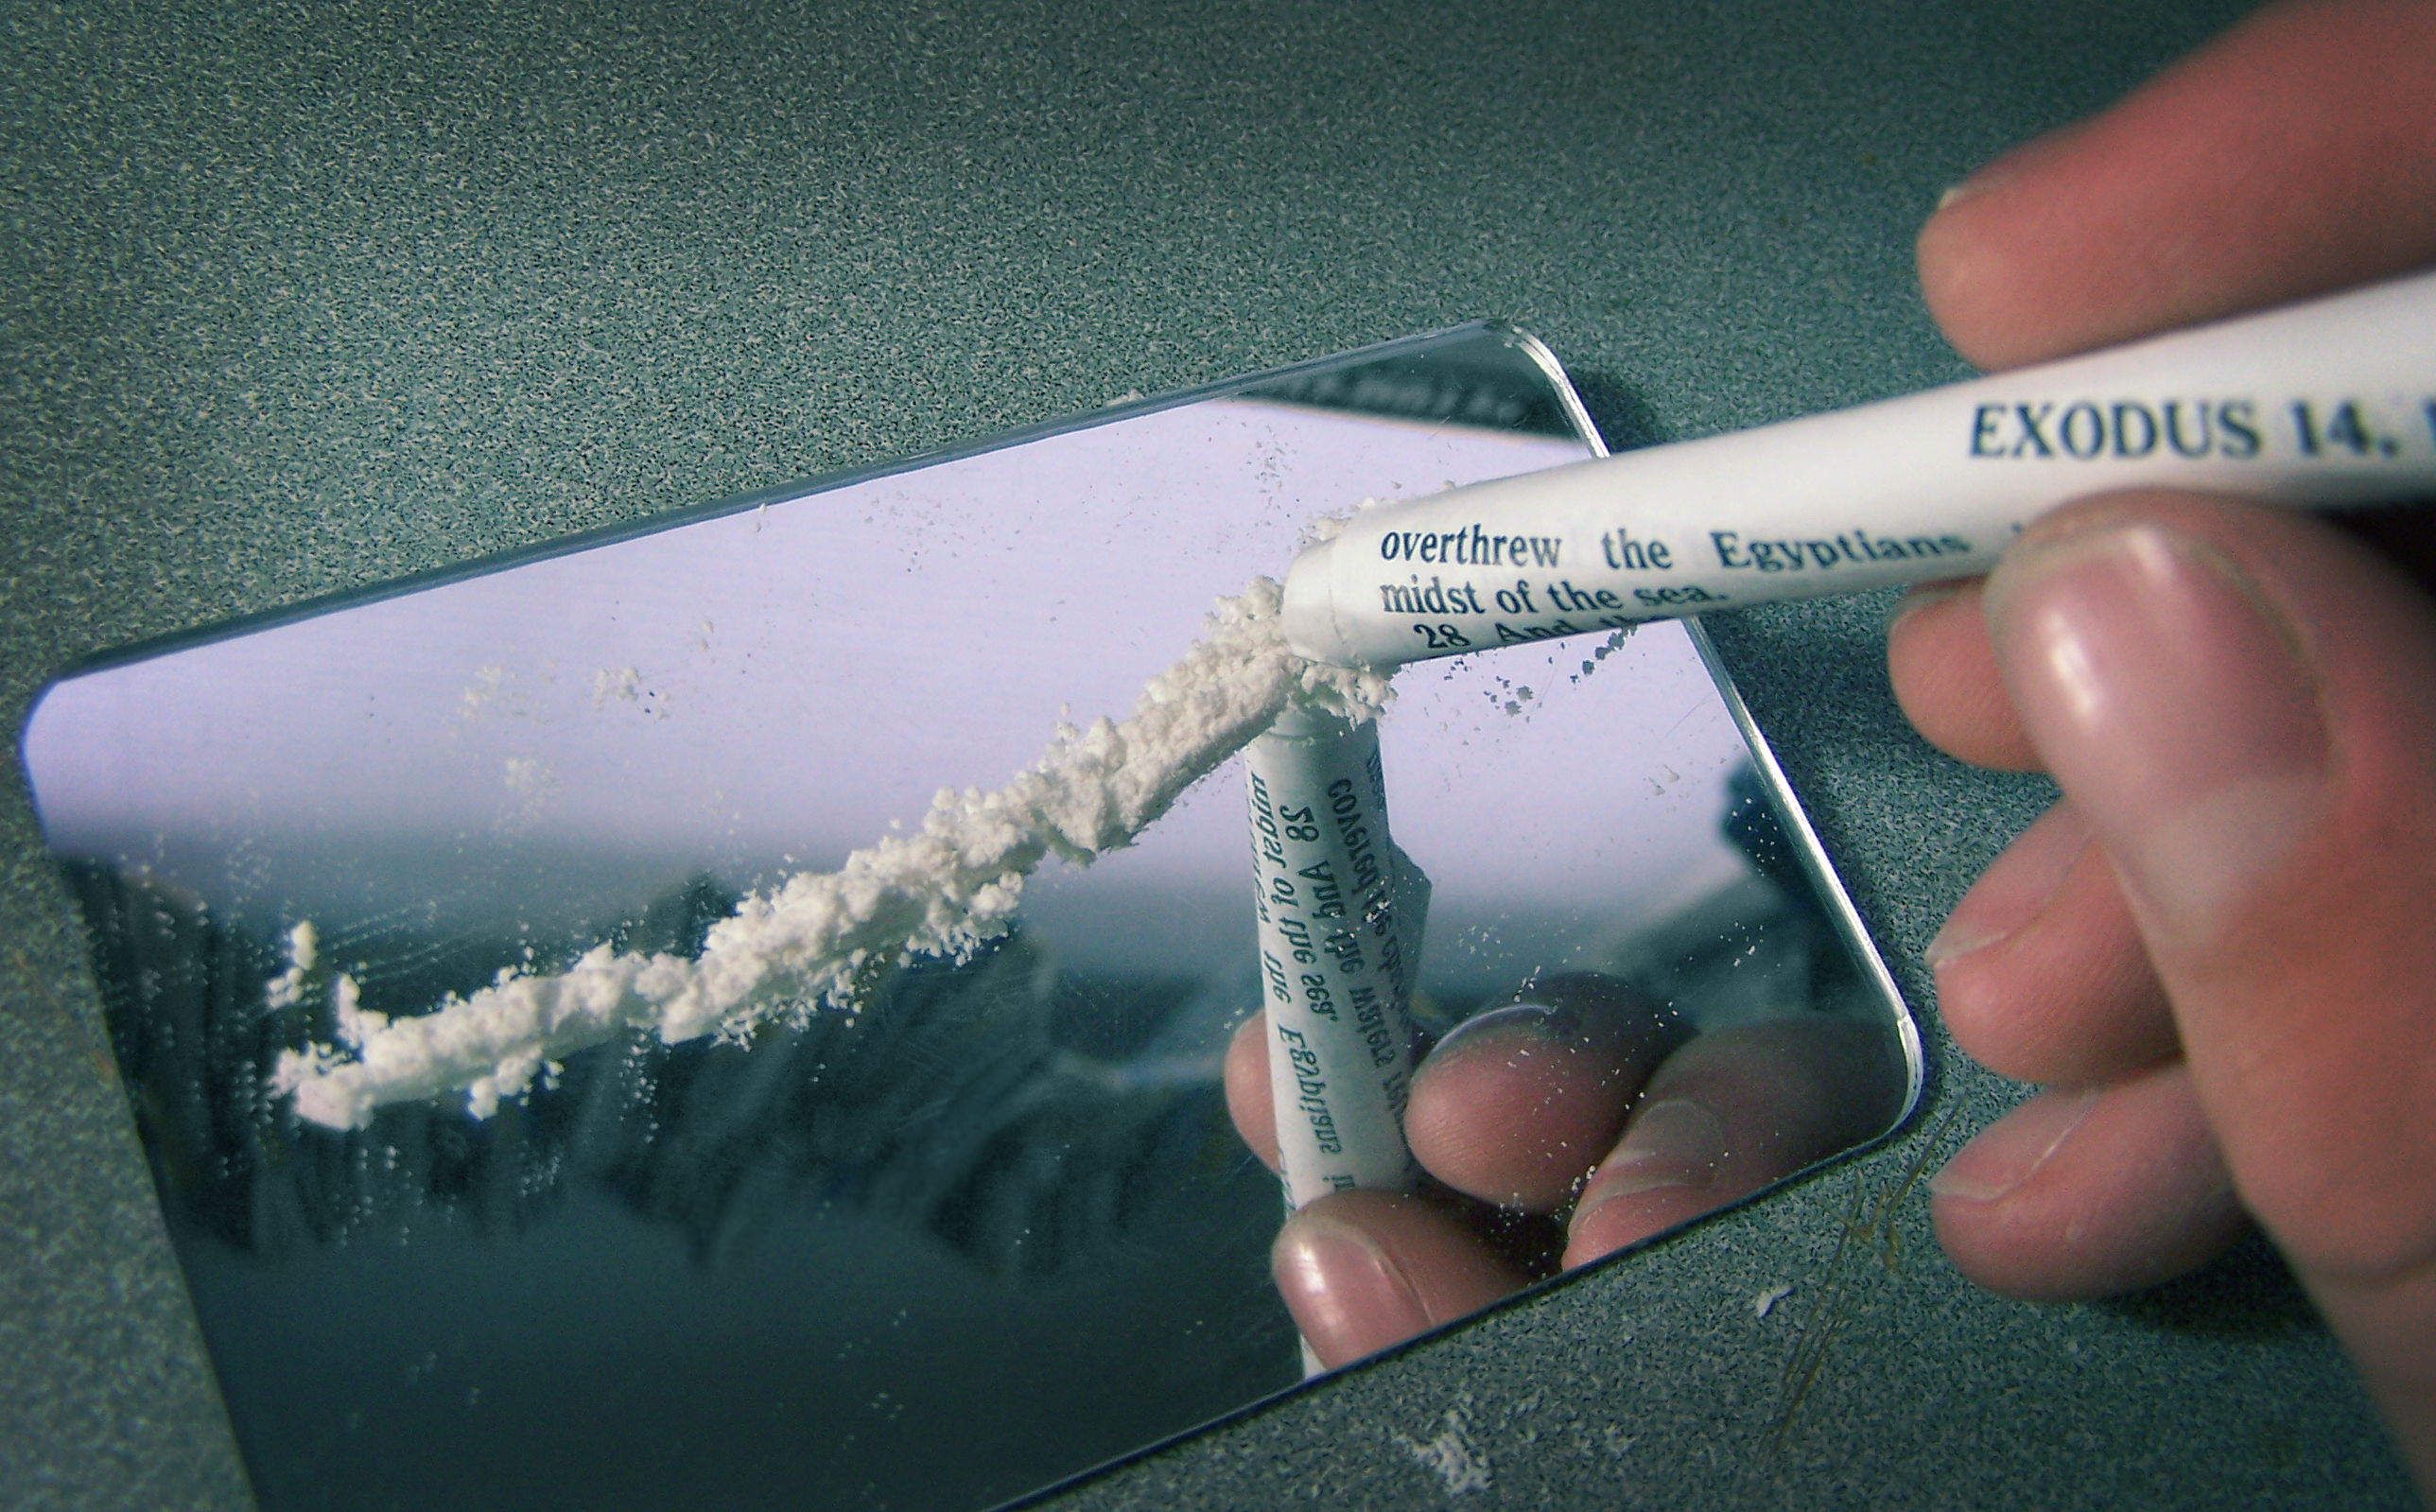 COCAINE FOUND IN LONDON COCAINE